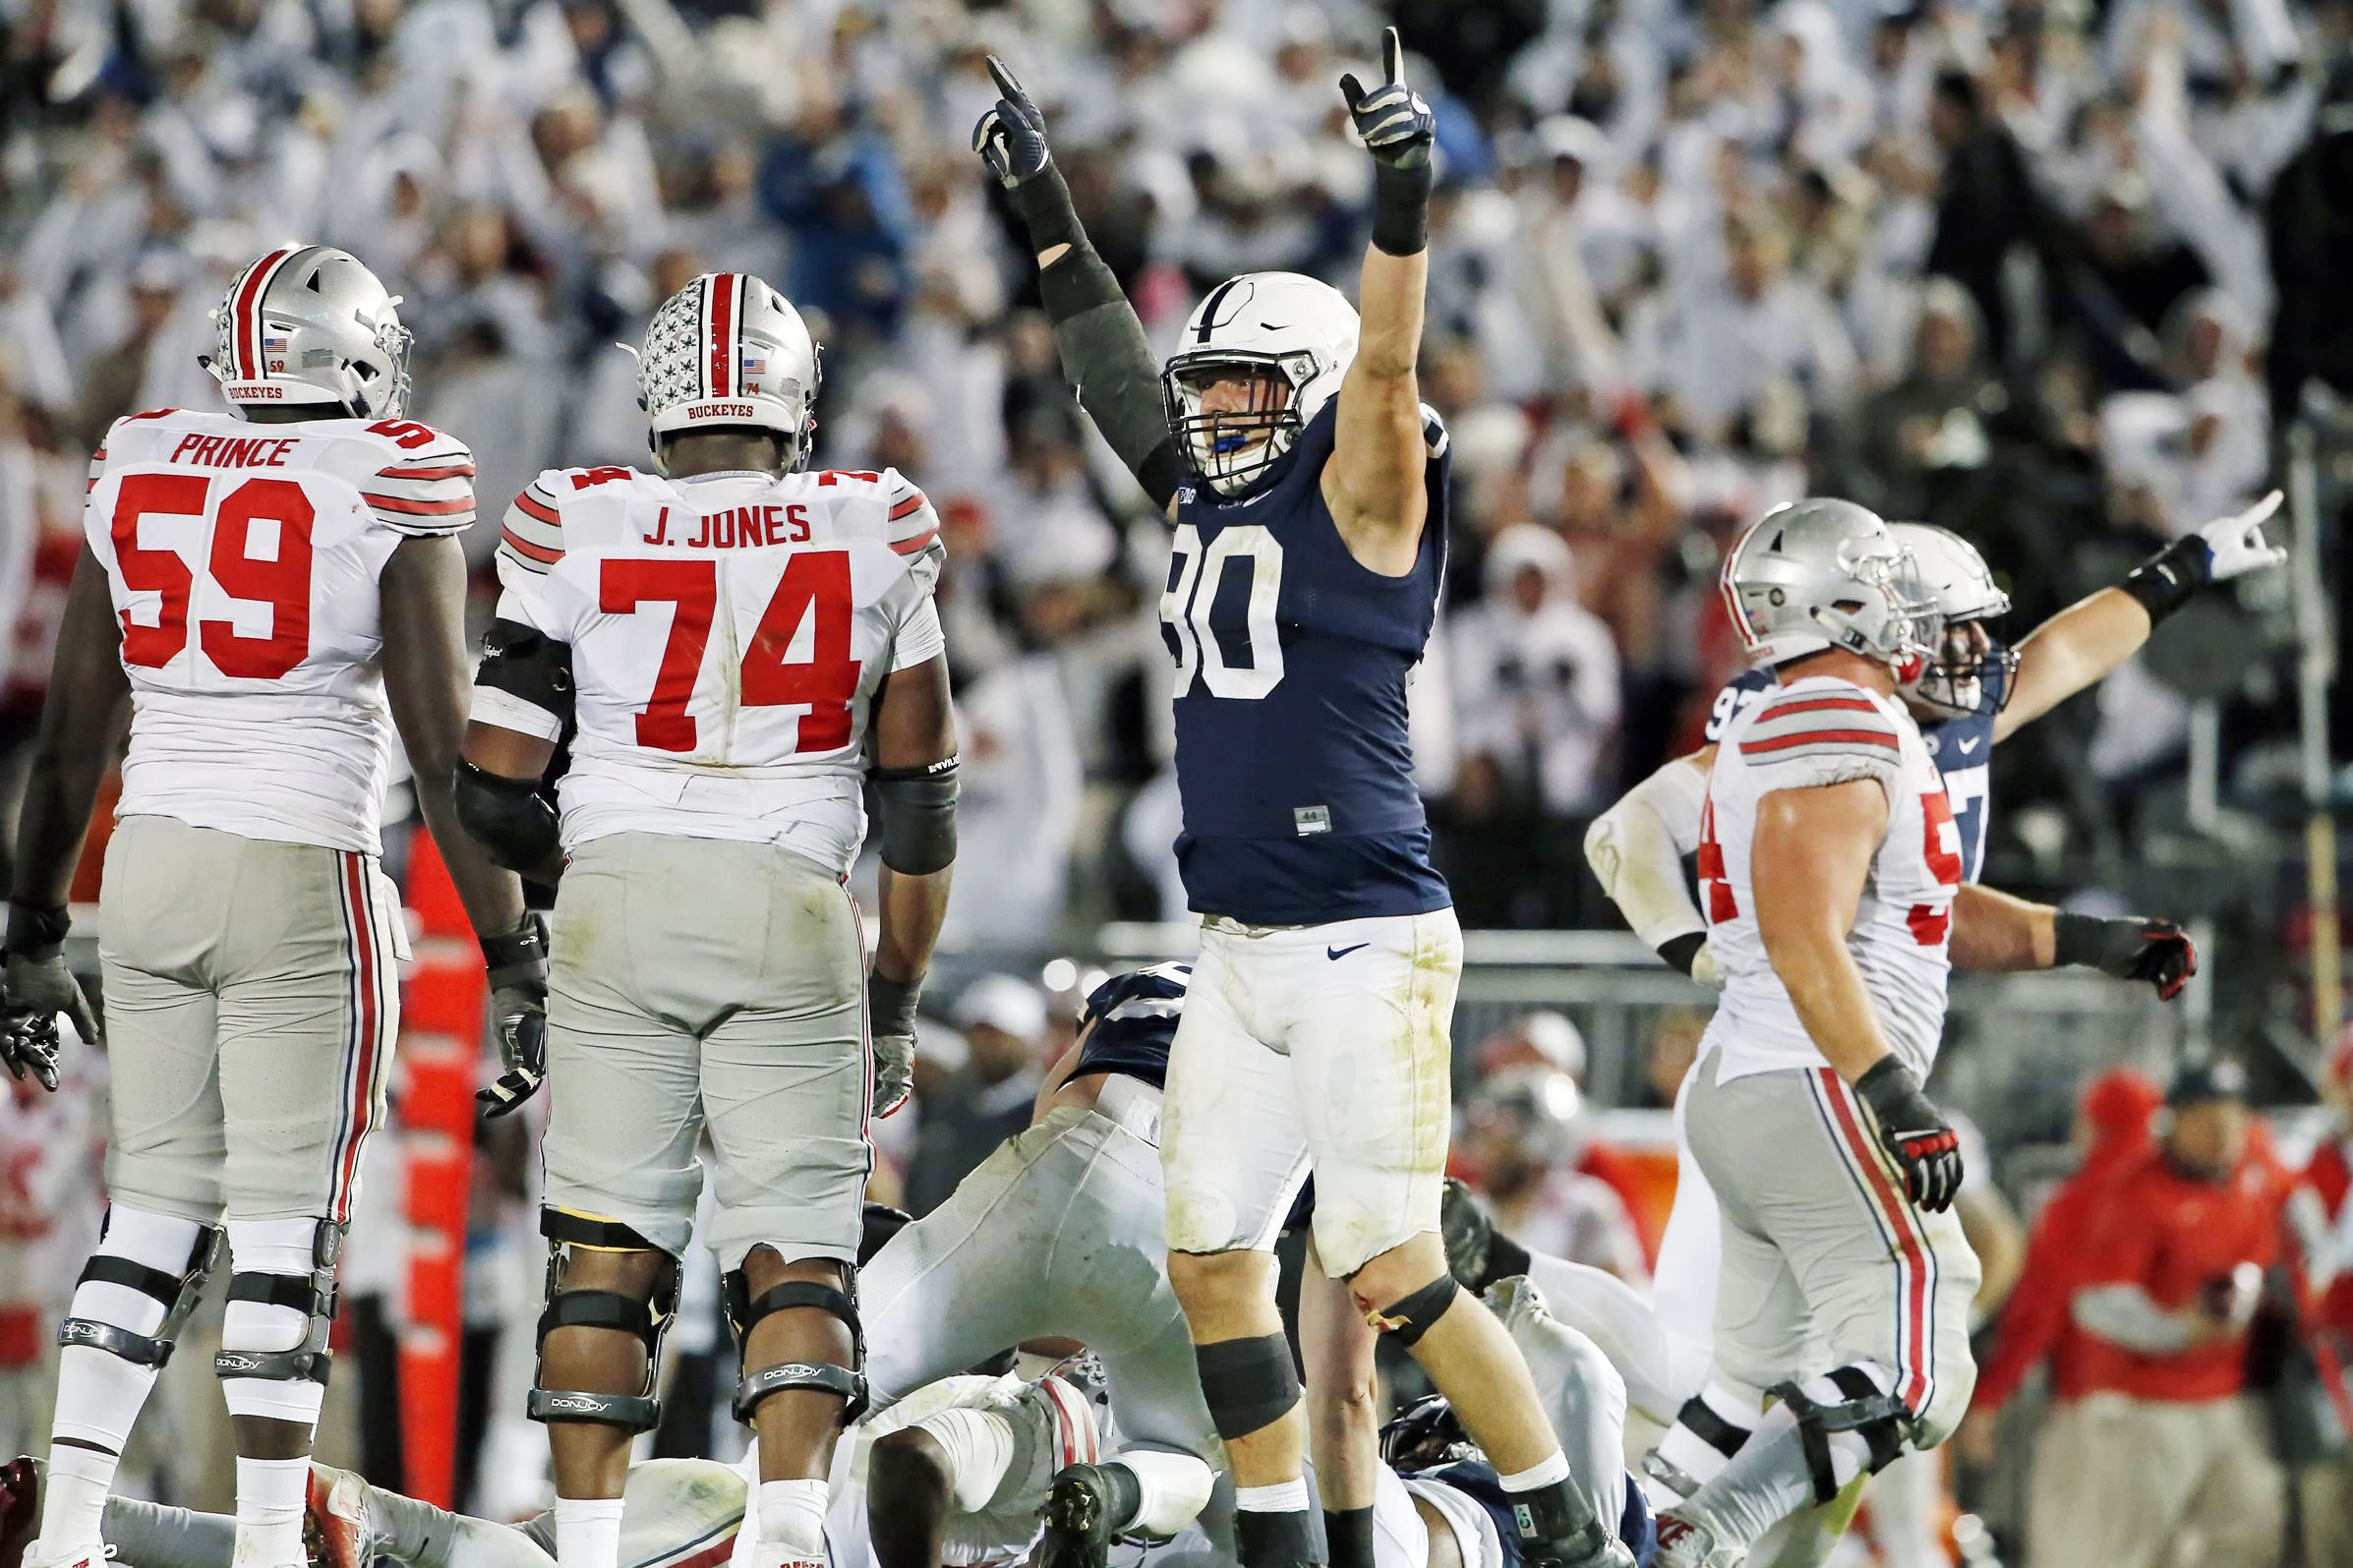 Linebackers return to lead versatile Penn State defense